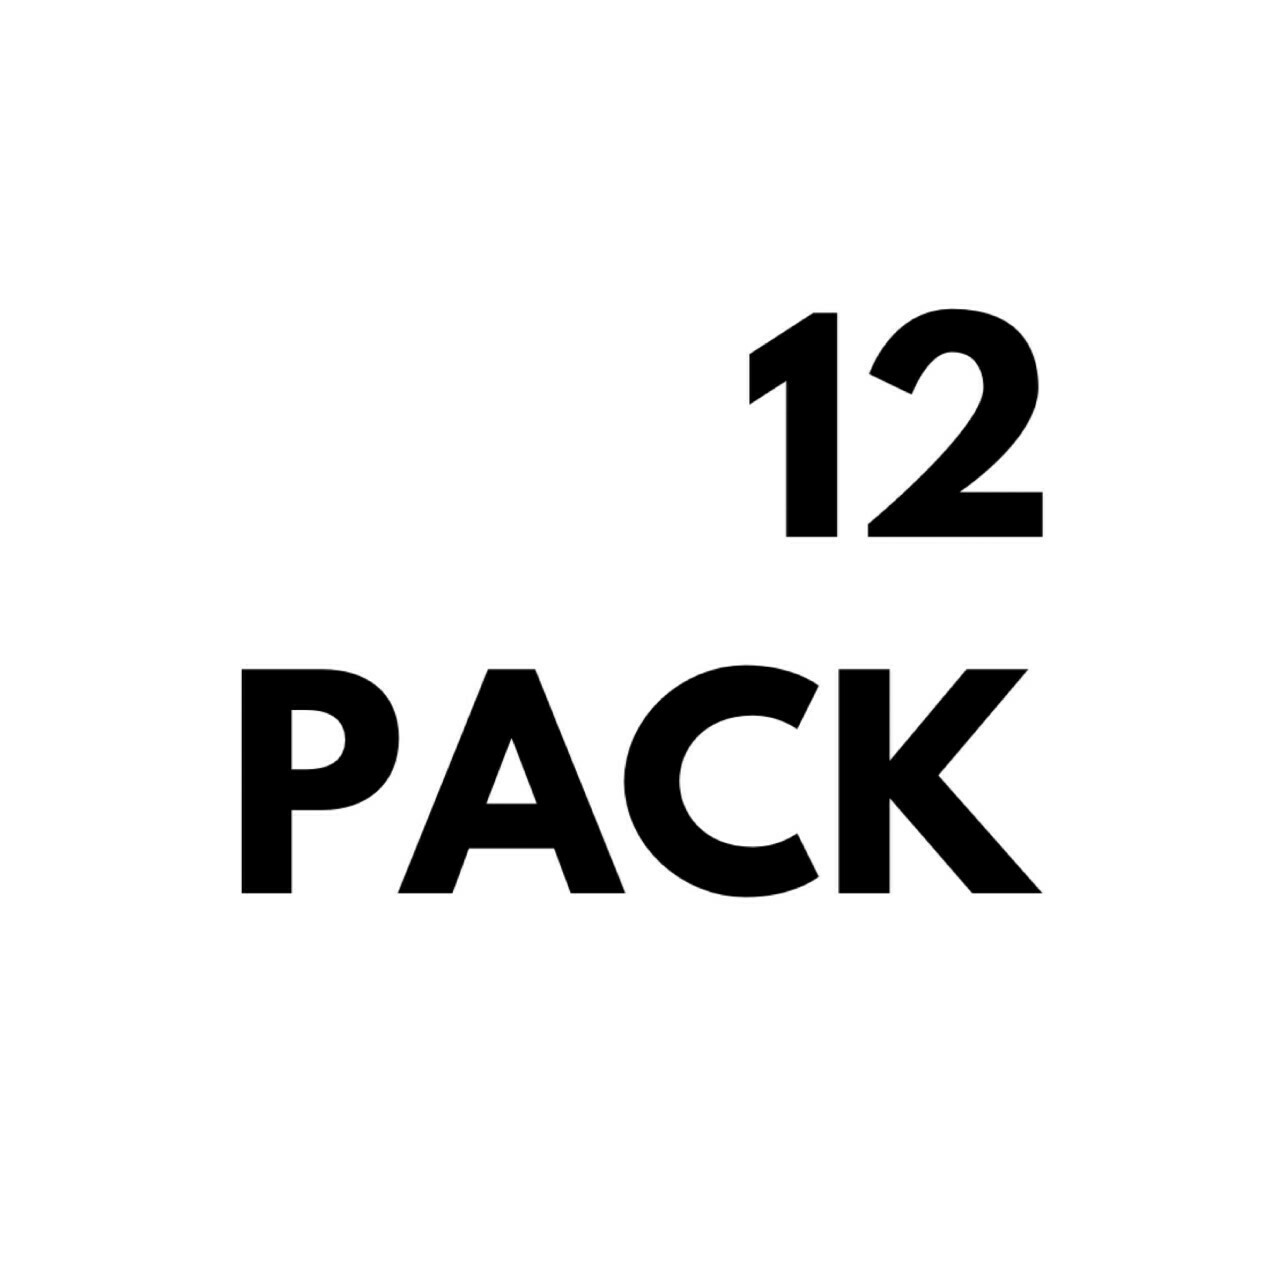 NEW** CREATE YOUR OWN 12 PACK (Pick any 12 blends) **LIMITED TIME**